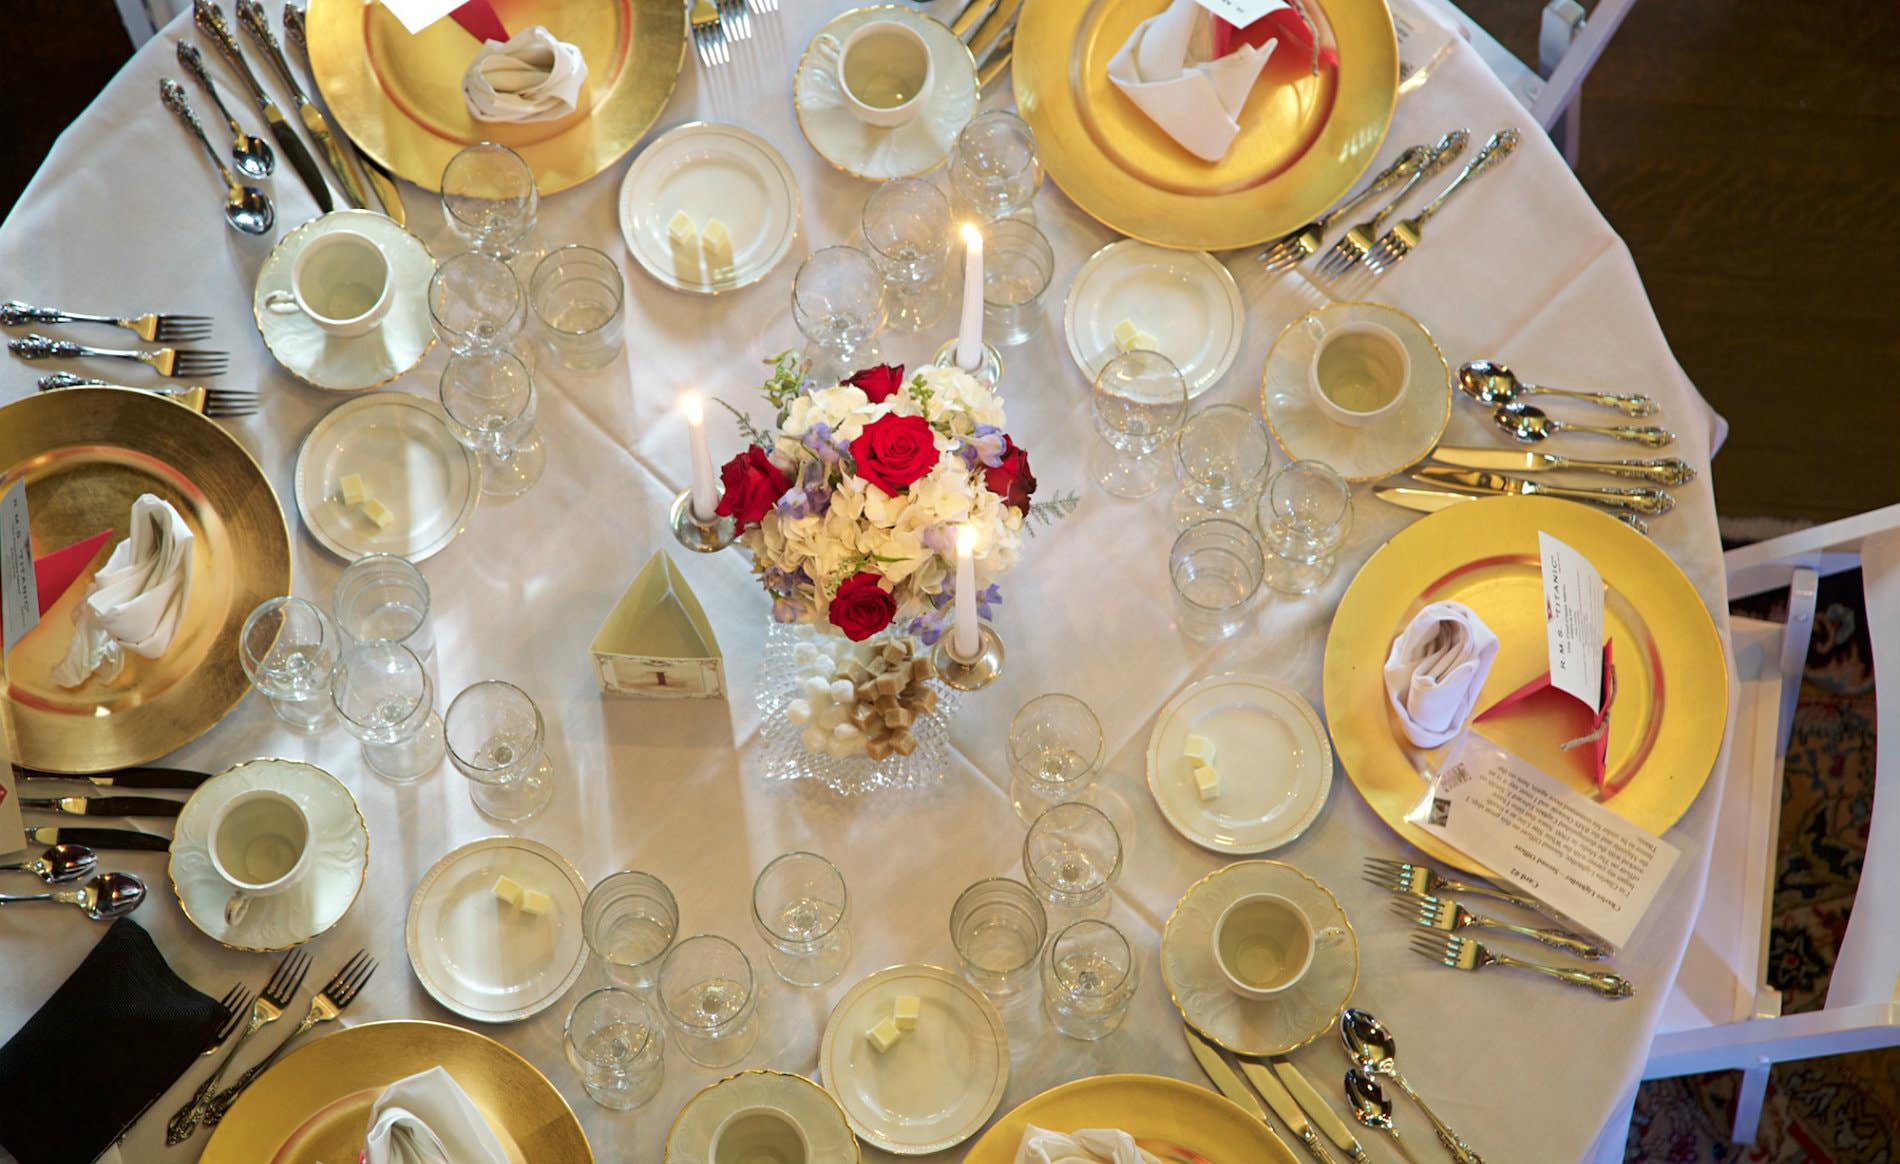 White covered table set with gold and white dishes, wine glasses, and three white lite candles around a floral centerpiece